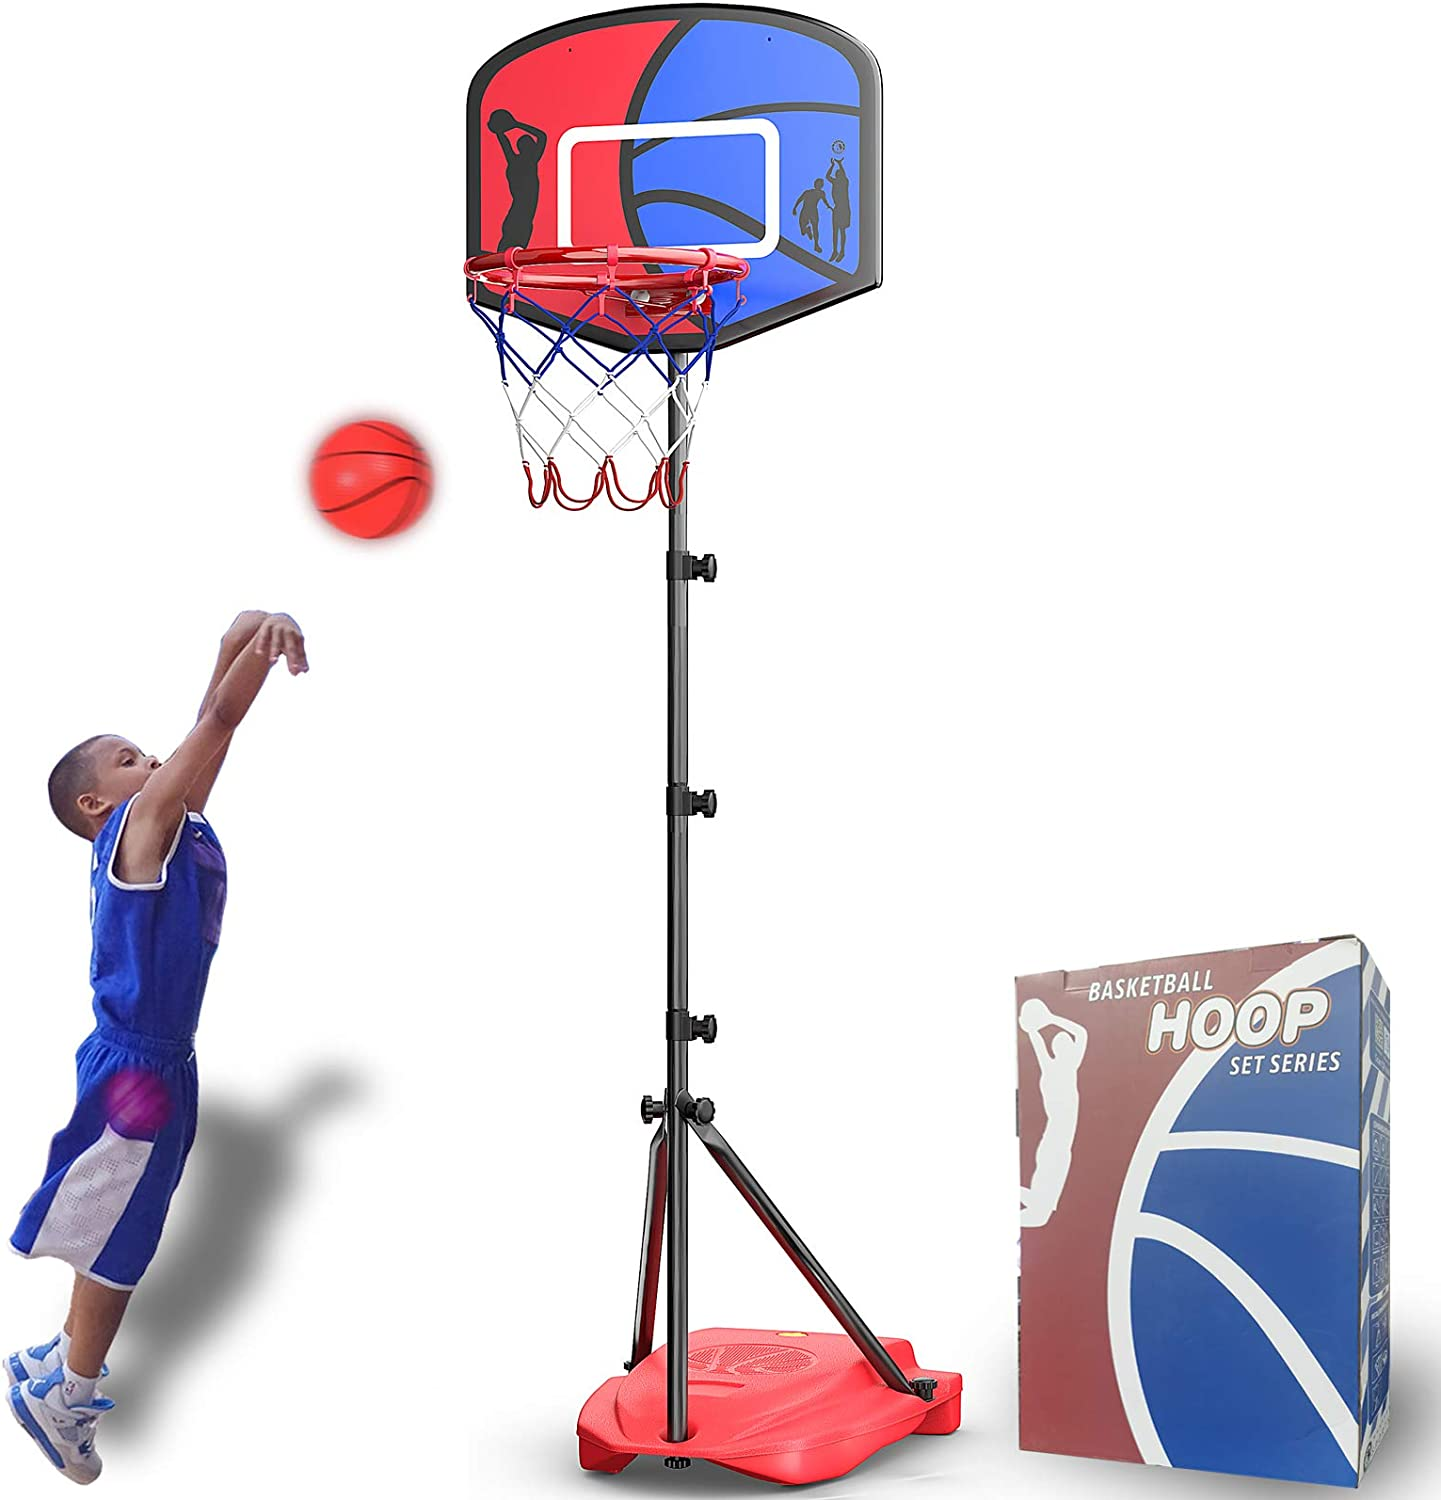 Price reduction HAHAKEE Kids Basketball Hoop Height-Adjustable FT-6.1 I 2.9 Spring new work FT